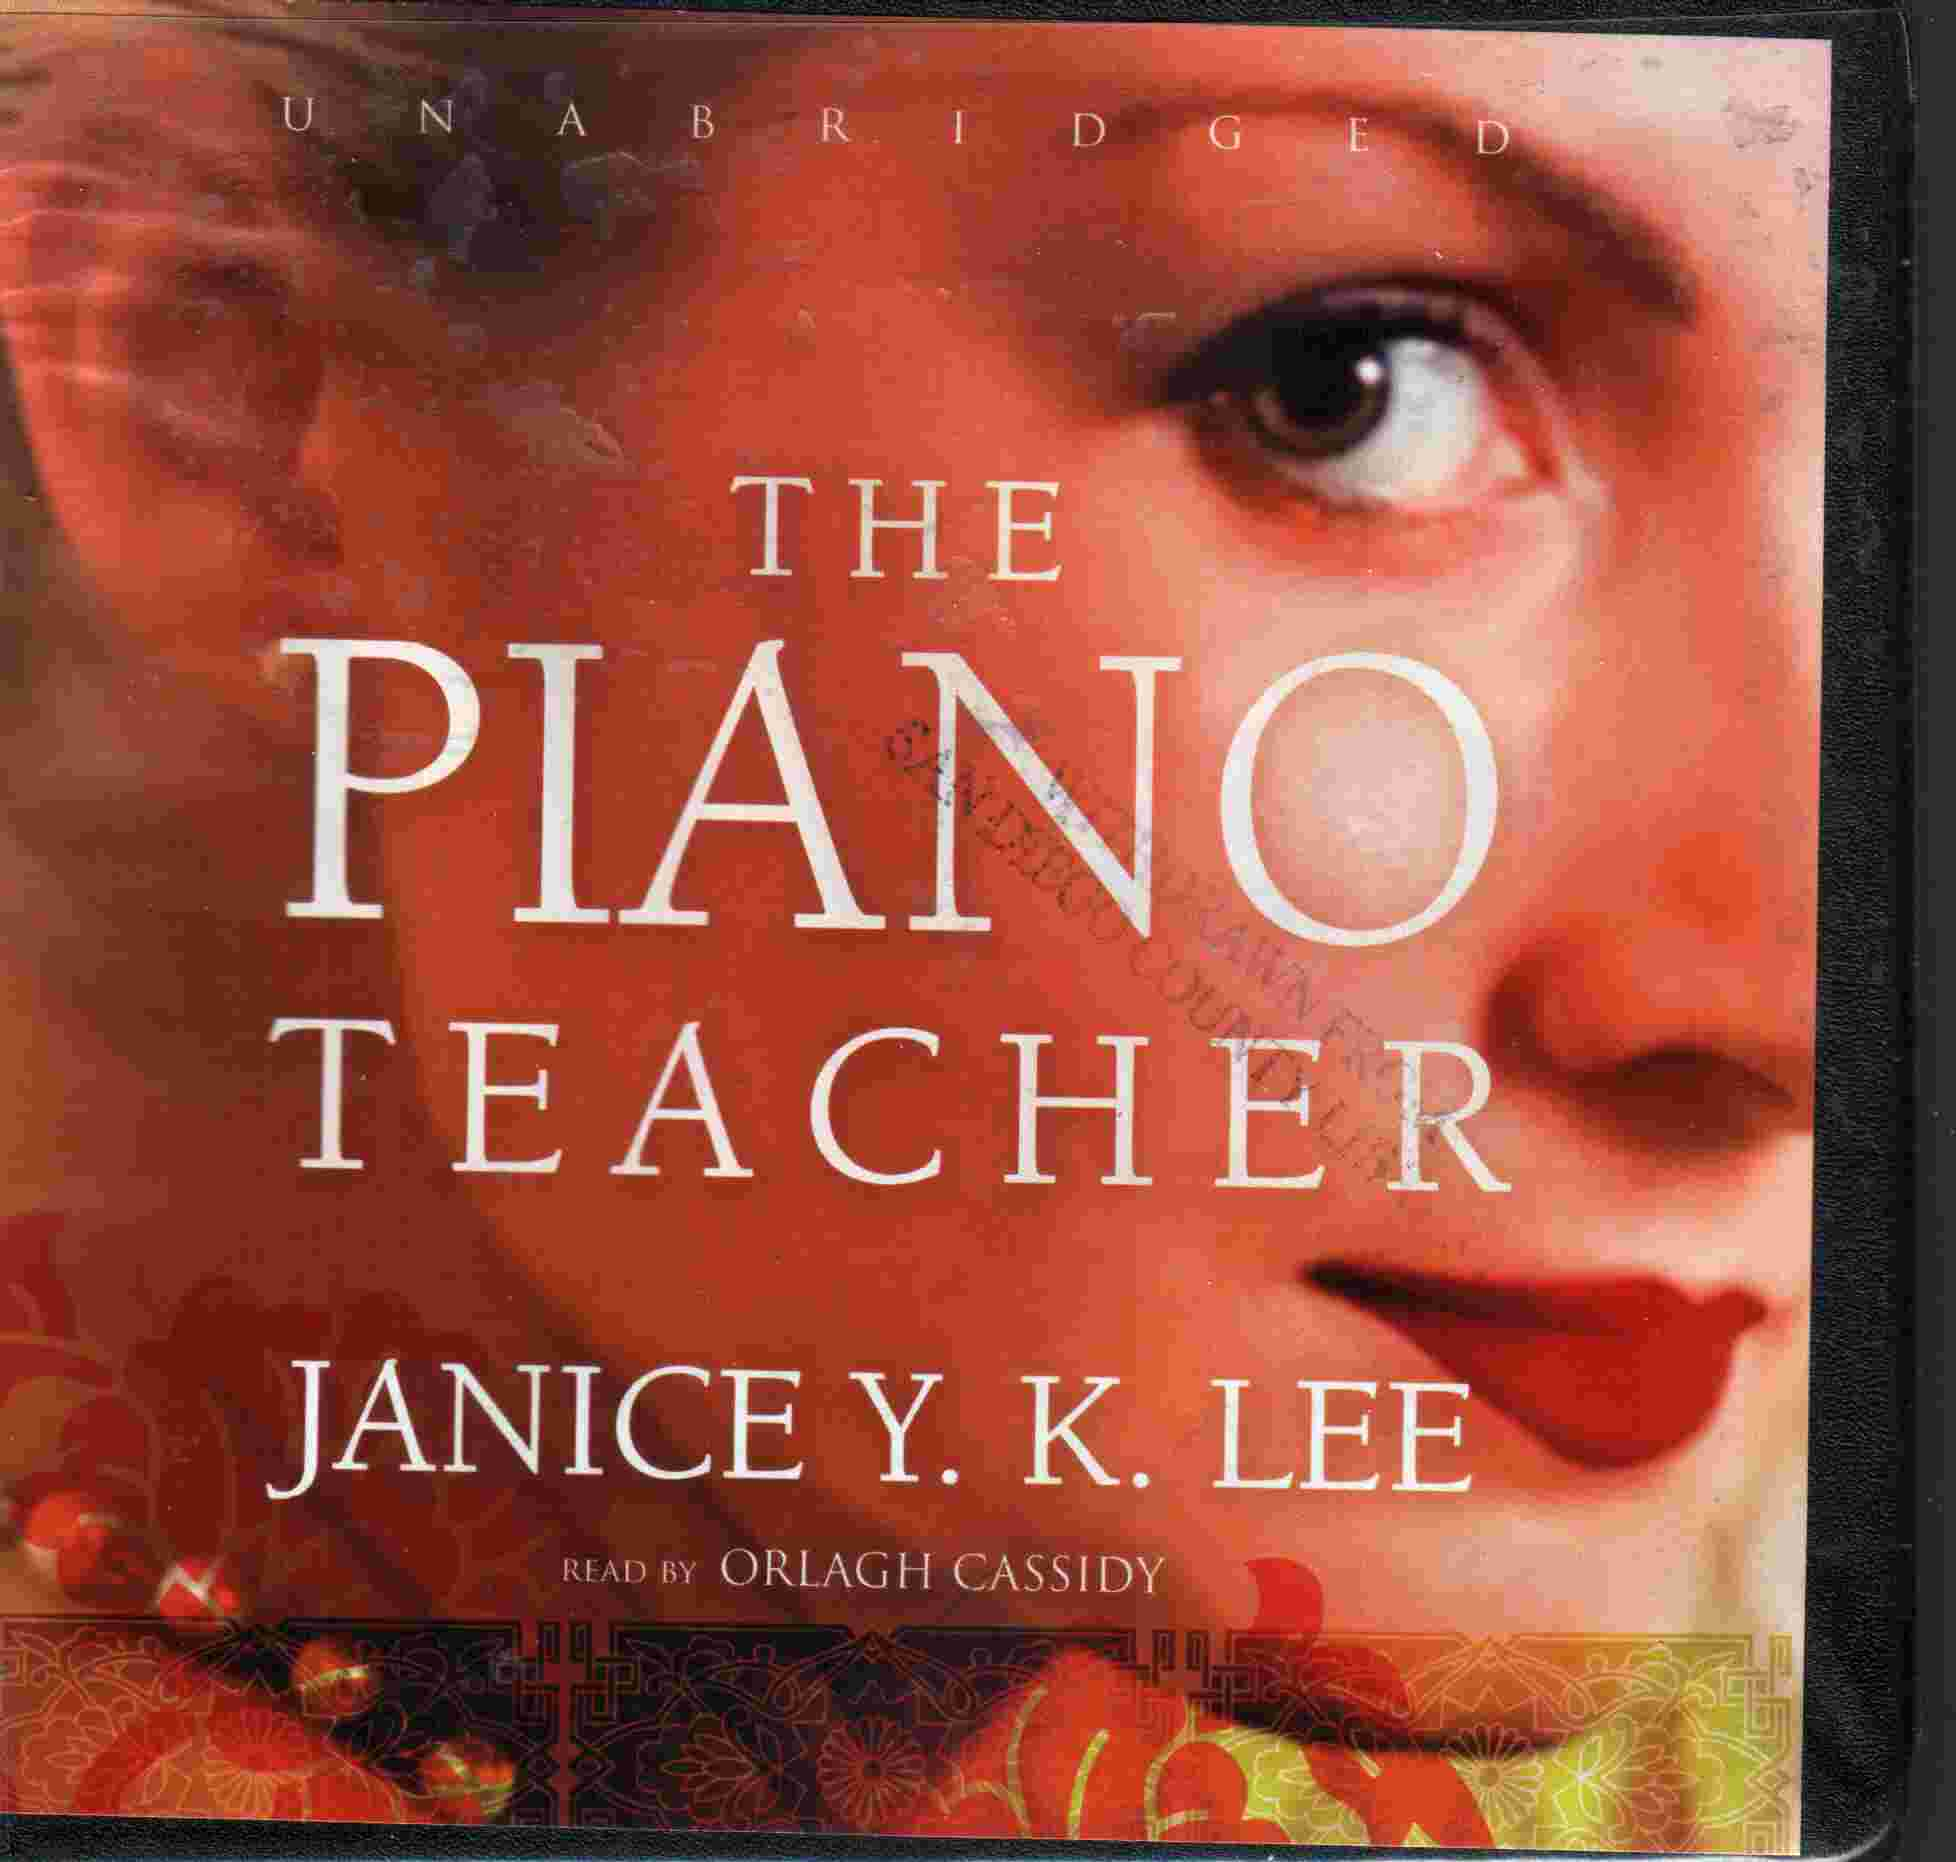 THE PIANO TEACHER by Janice Y K. Lee